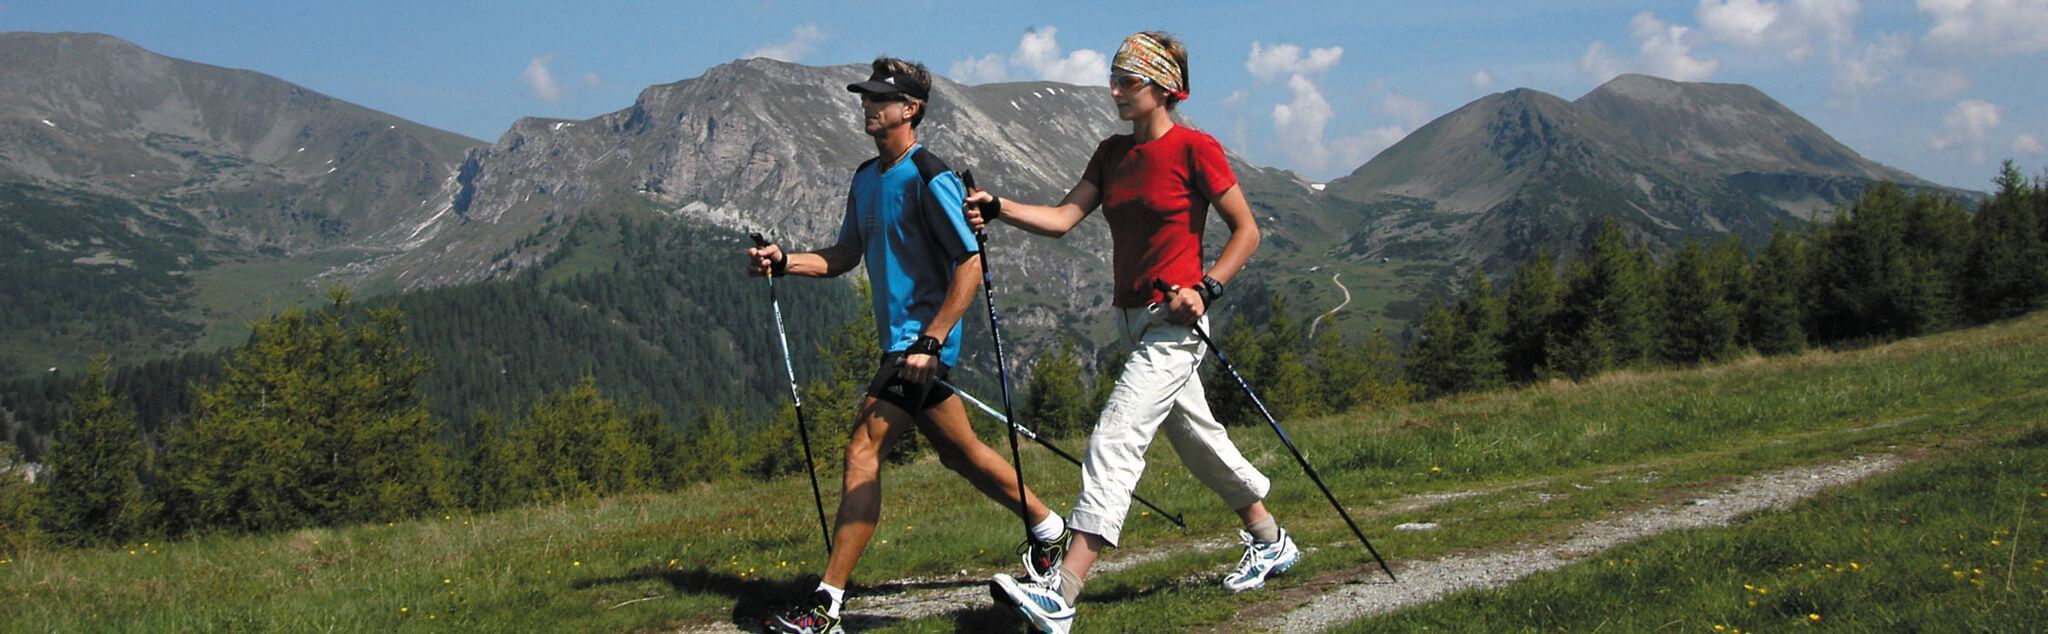 Nordic Walking a Grosseto